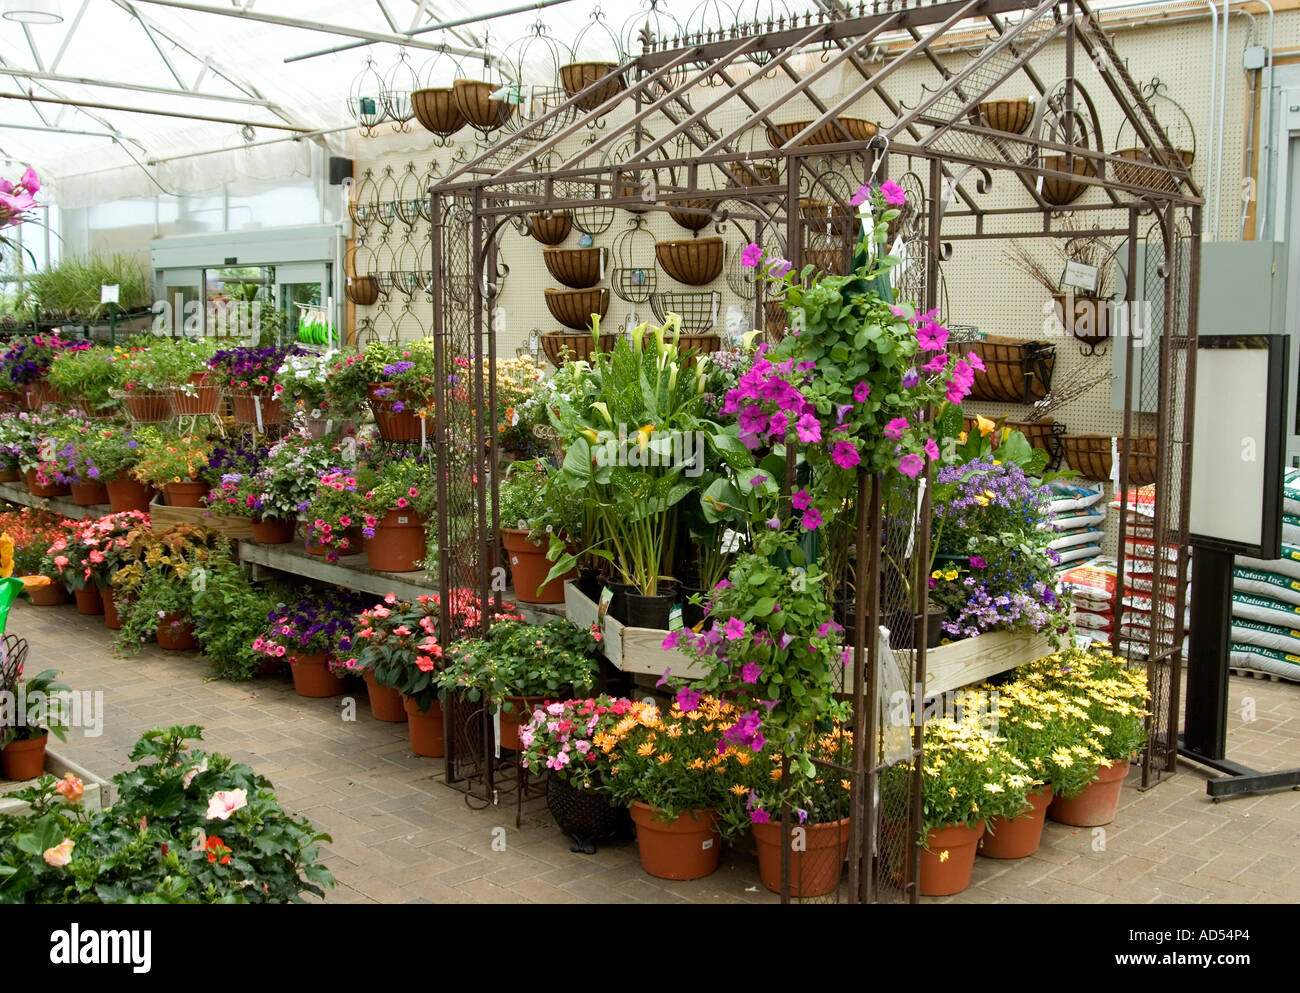 Greenhouse Garden Shop Stock Photo: 7604323 - Alamy